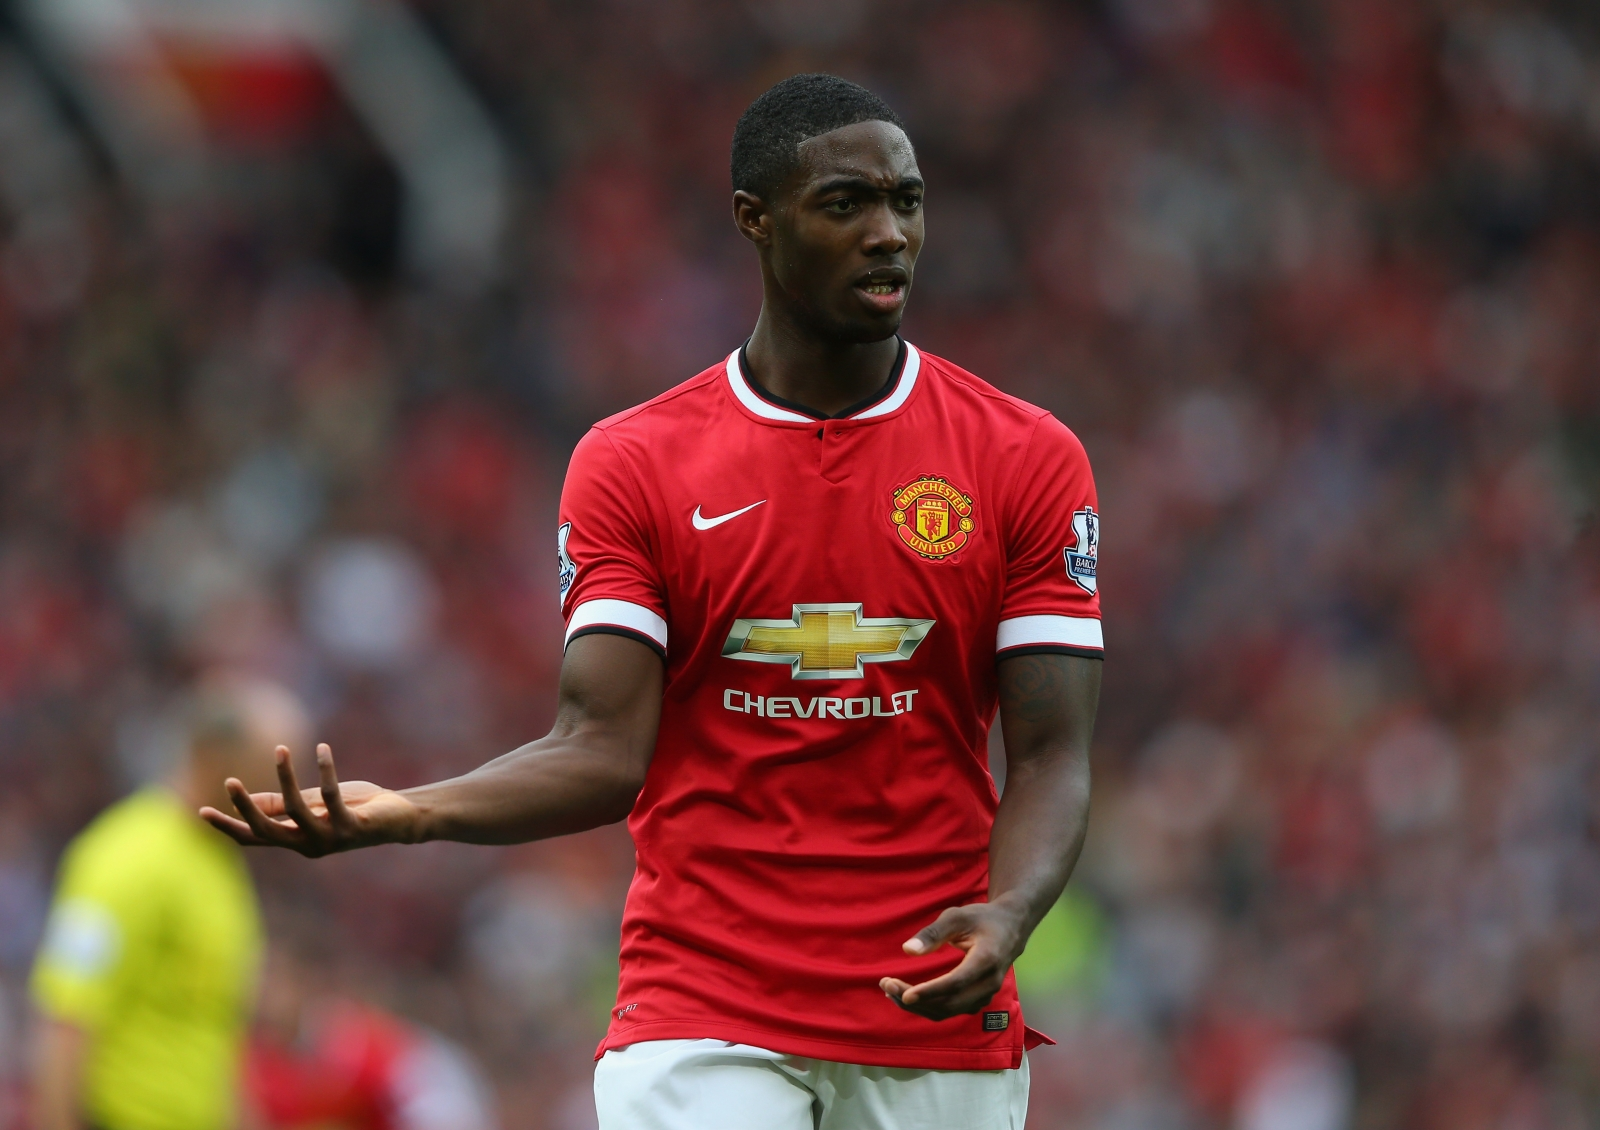 Tyler Blackett Set to Sign New £50,000-a-week Manchester United Contract